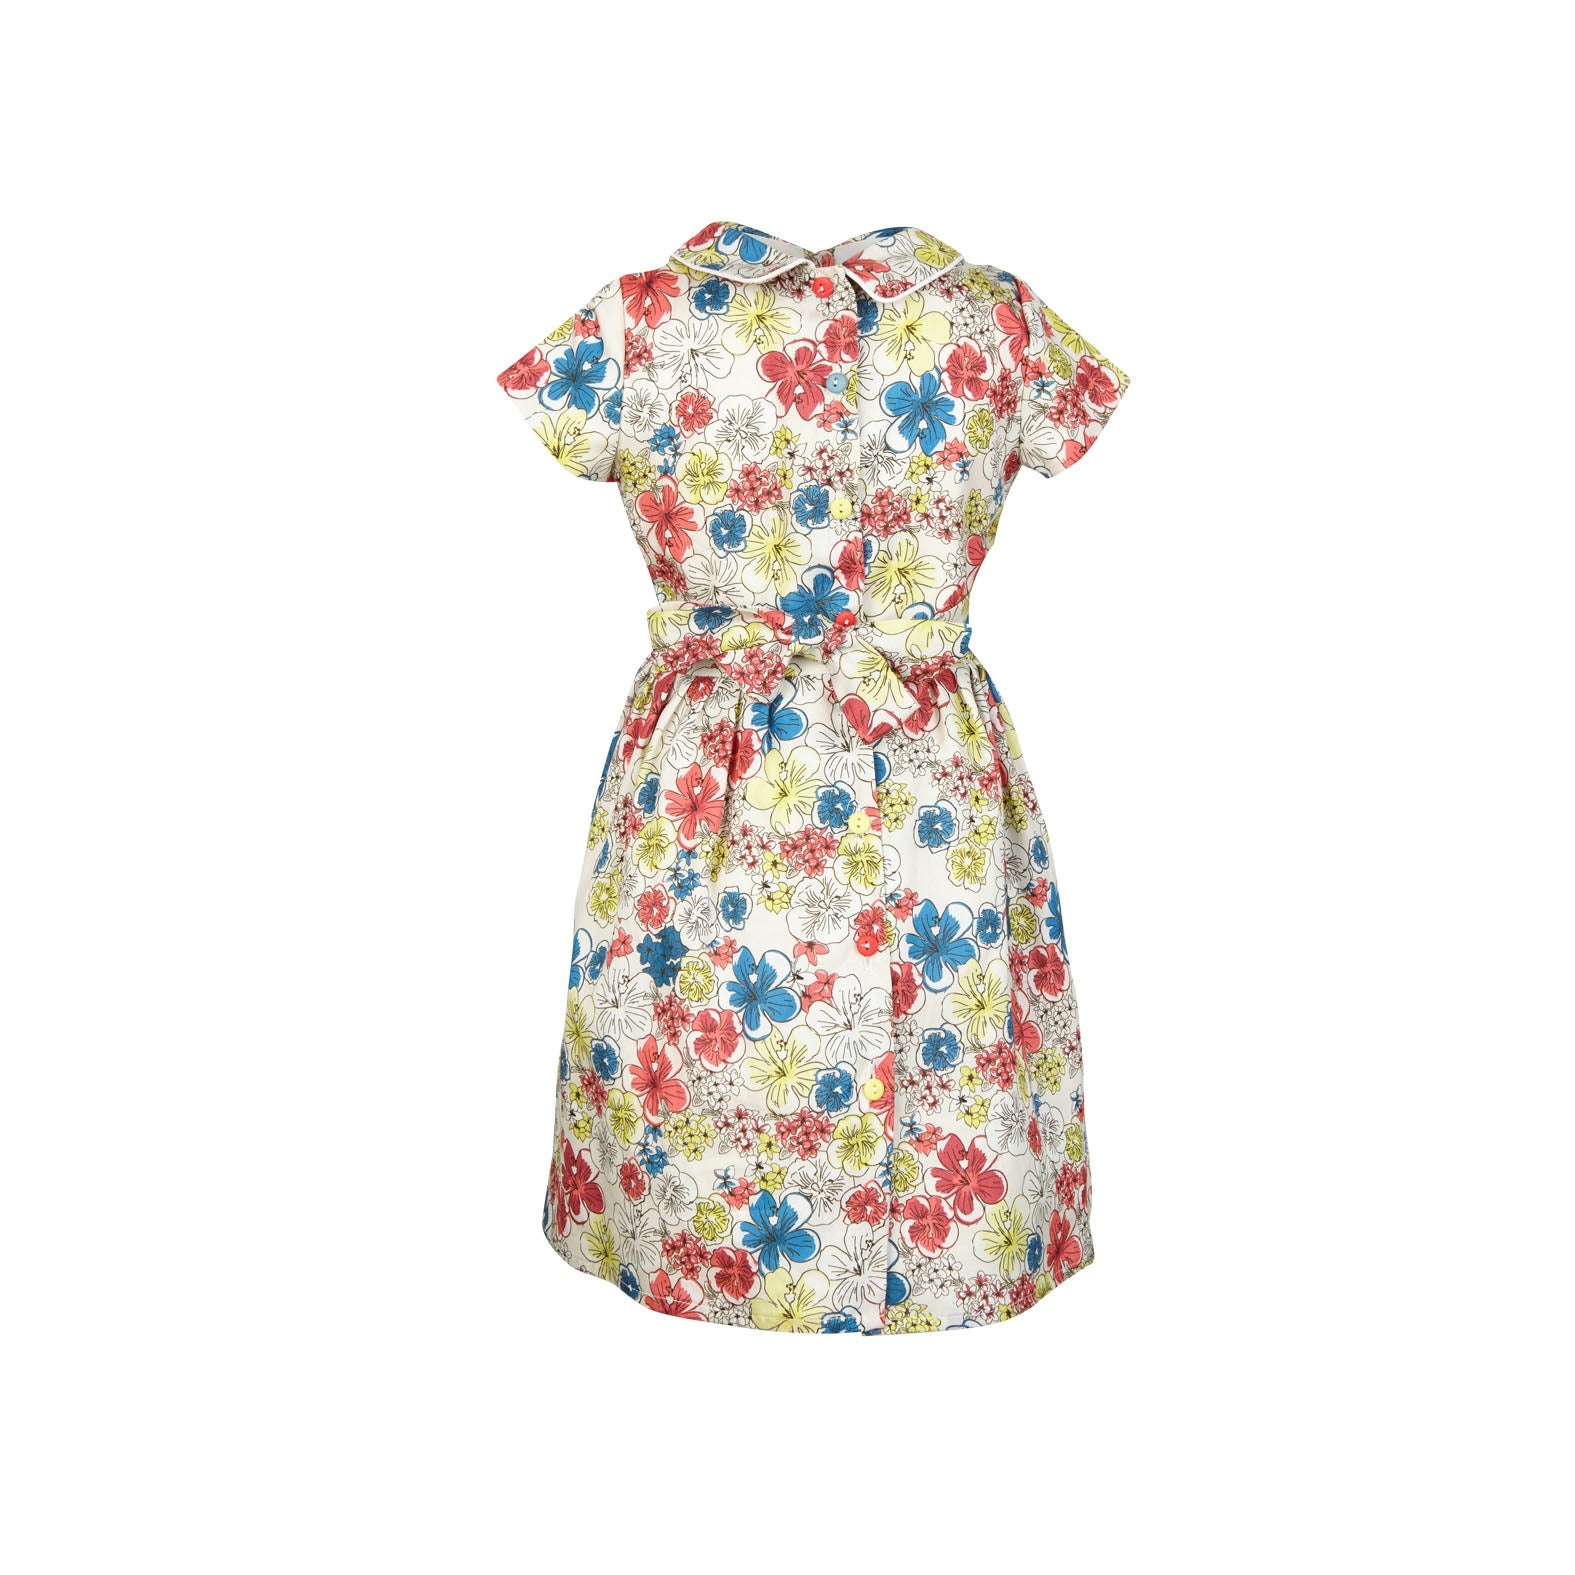 Penny - Ivory Hibiscus Heaven Print Floral Summer Party Dress for Girls